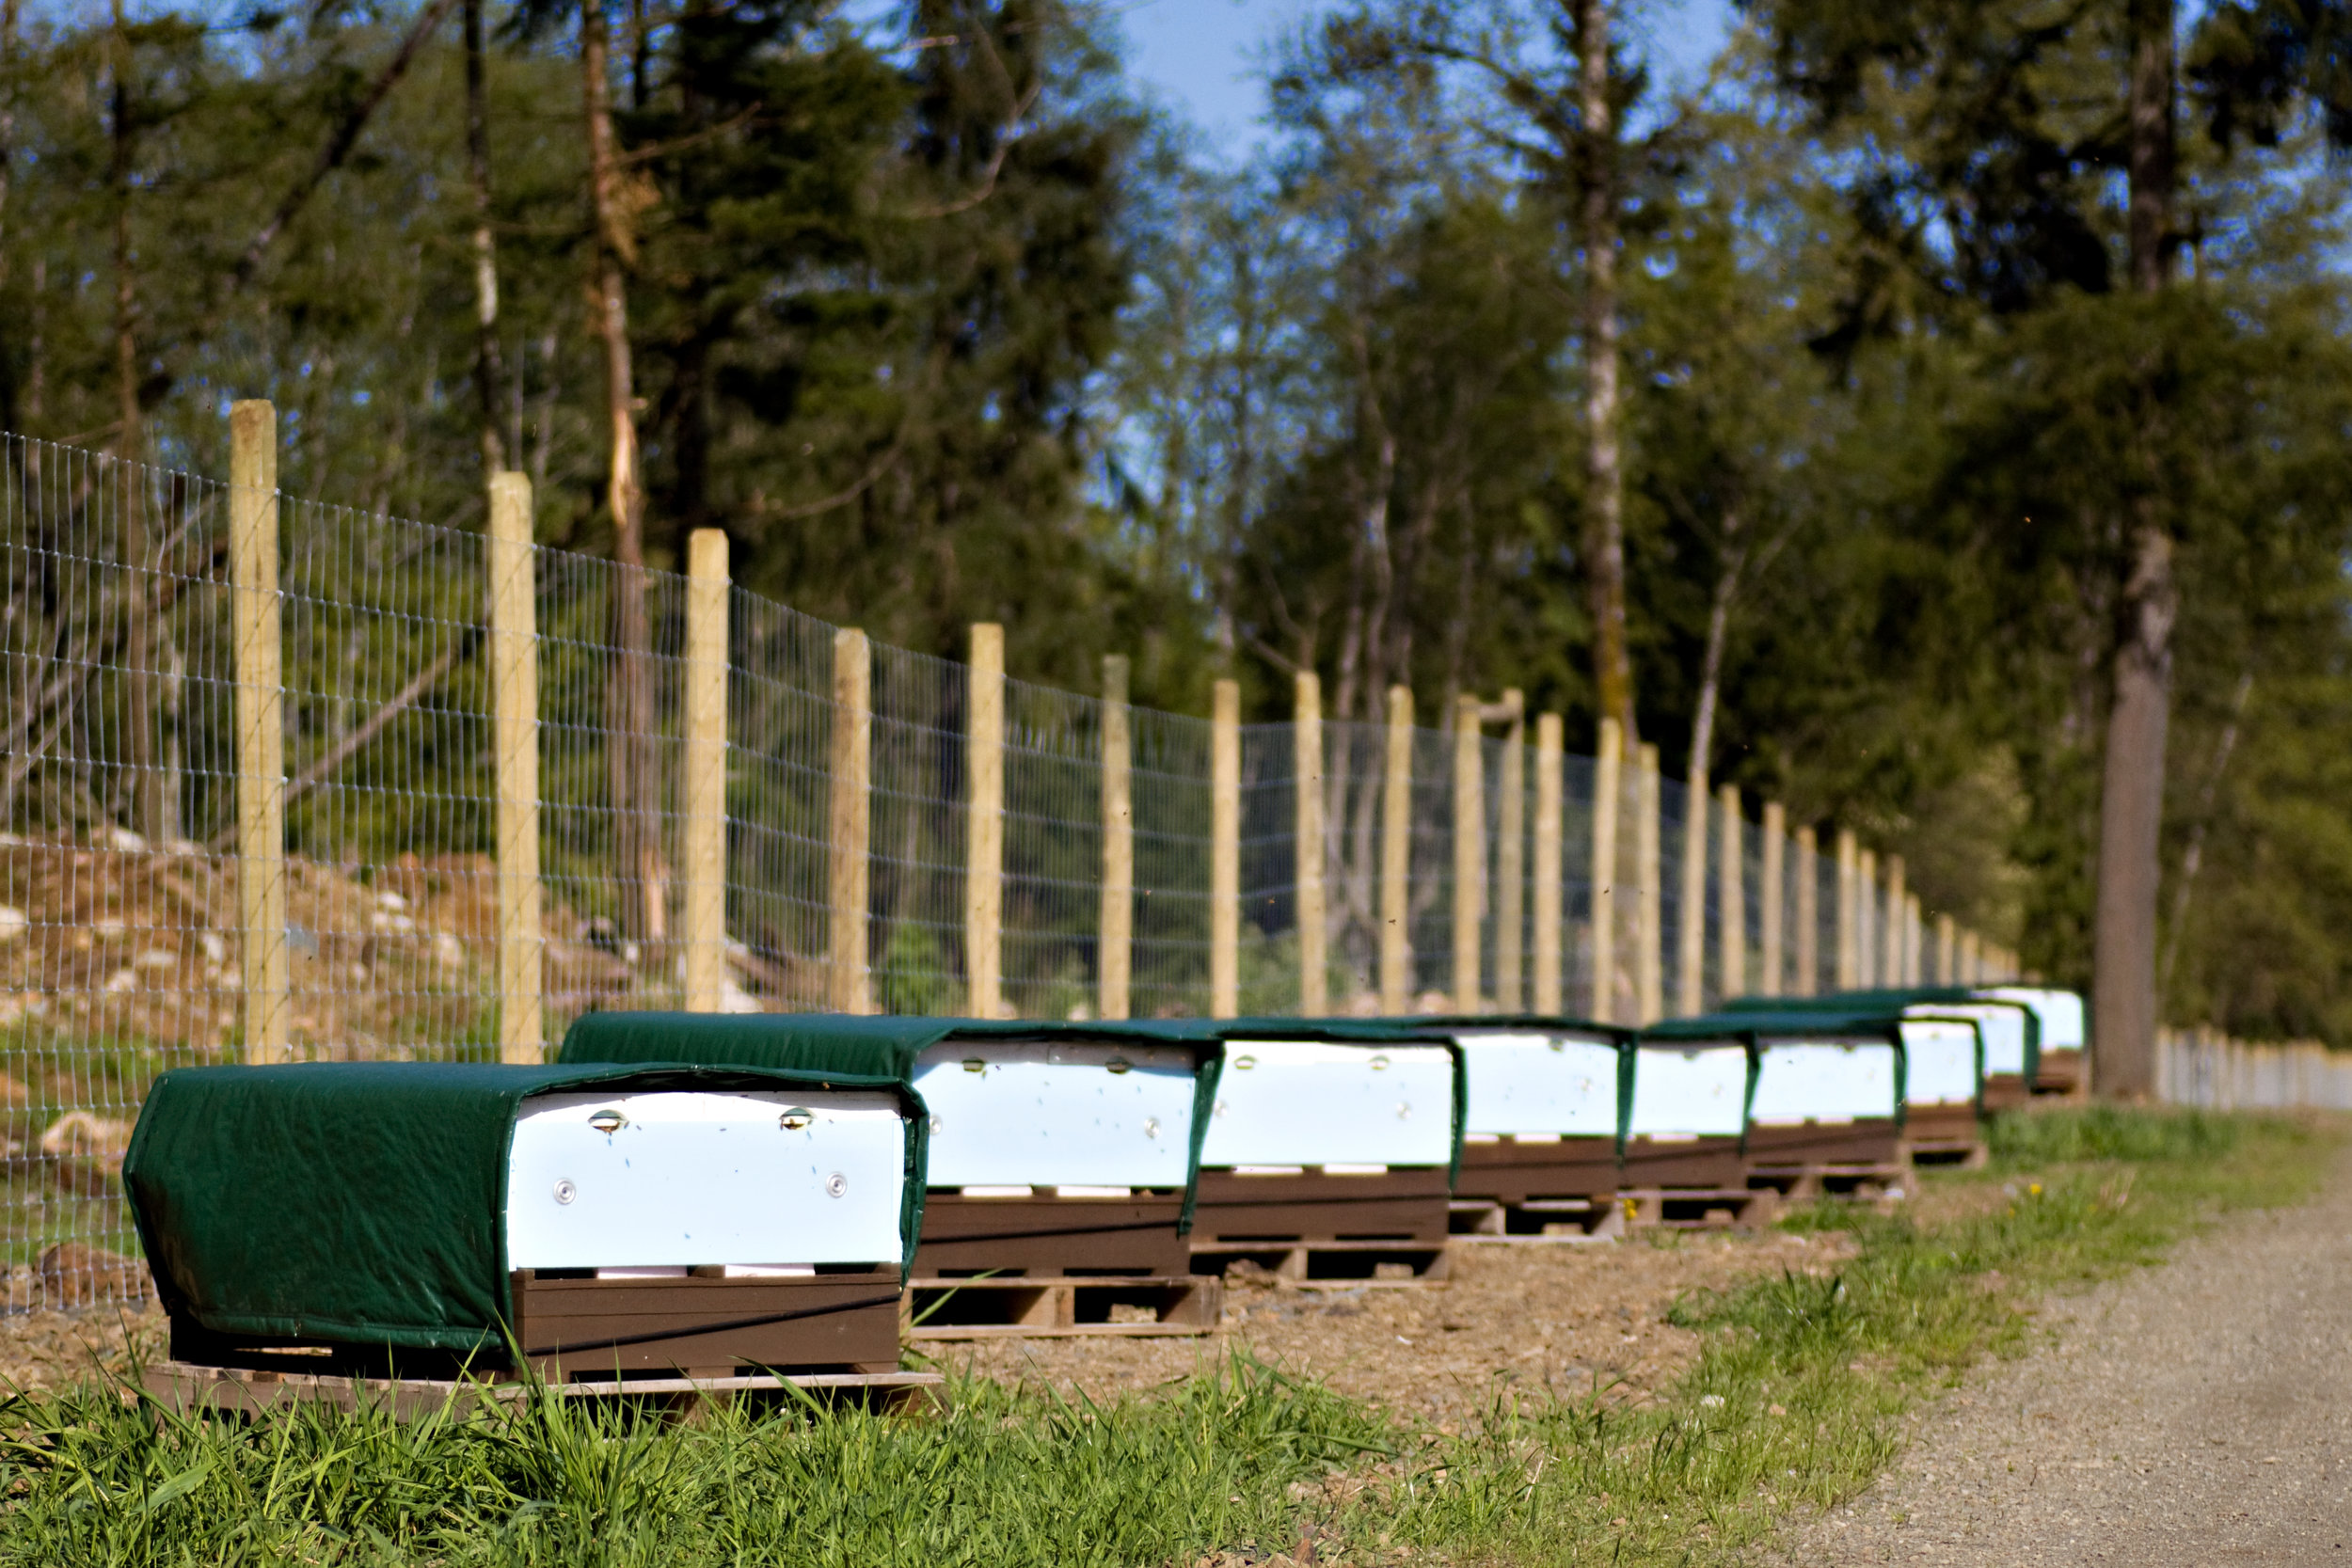 Contact Us - Be sure to come visit us here at the farm. Our Honey Stand is open 24/7, it is a cash based stand built on the honour system.